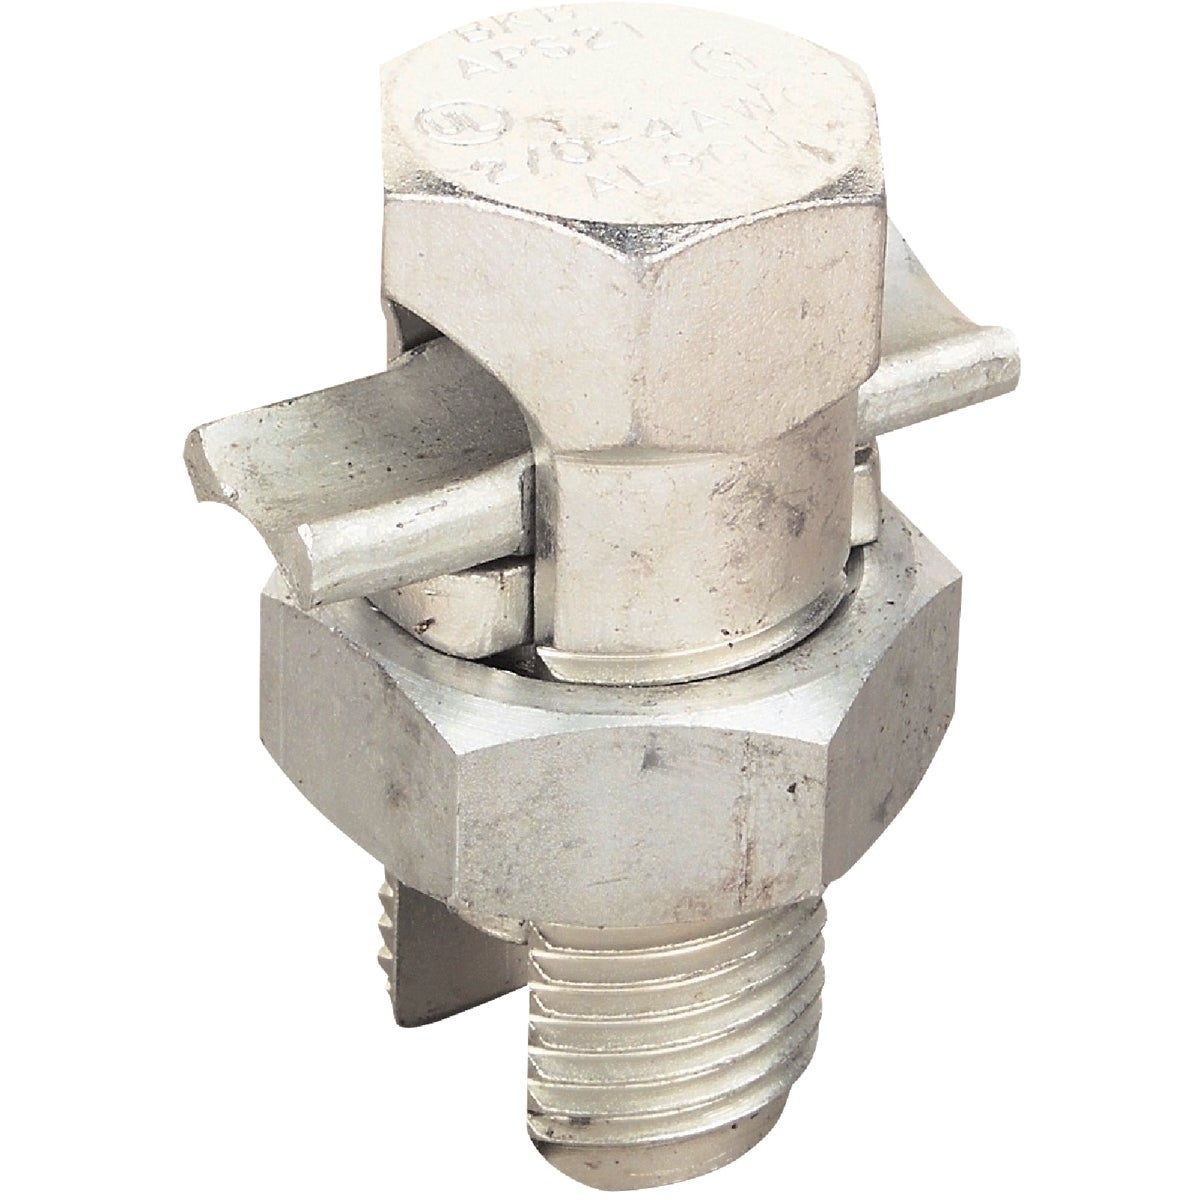 SPLIT BOLT CONNECTOR - APS02 by Thomas & Betts